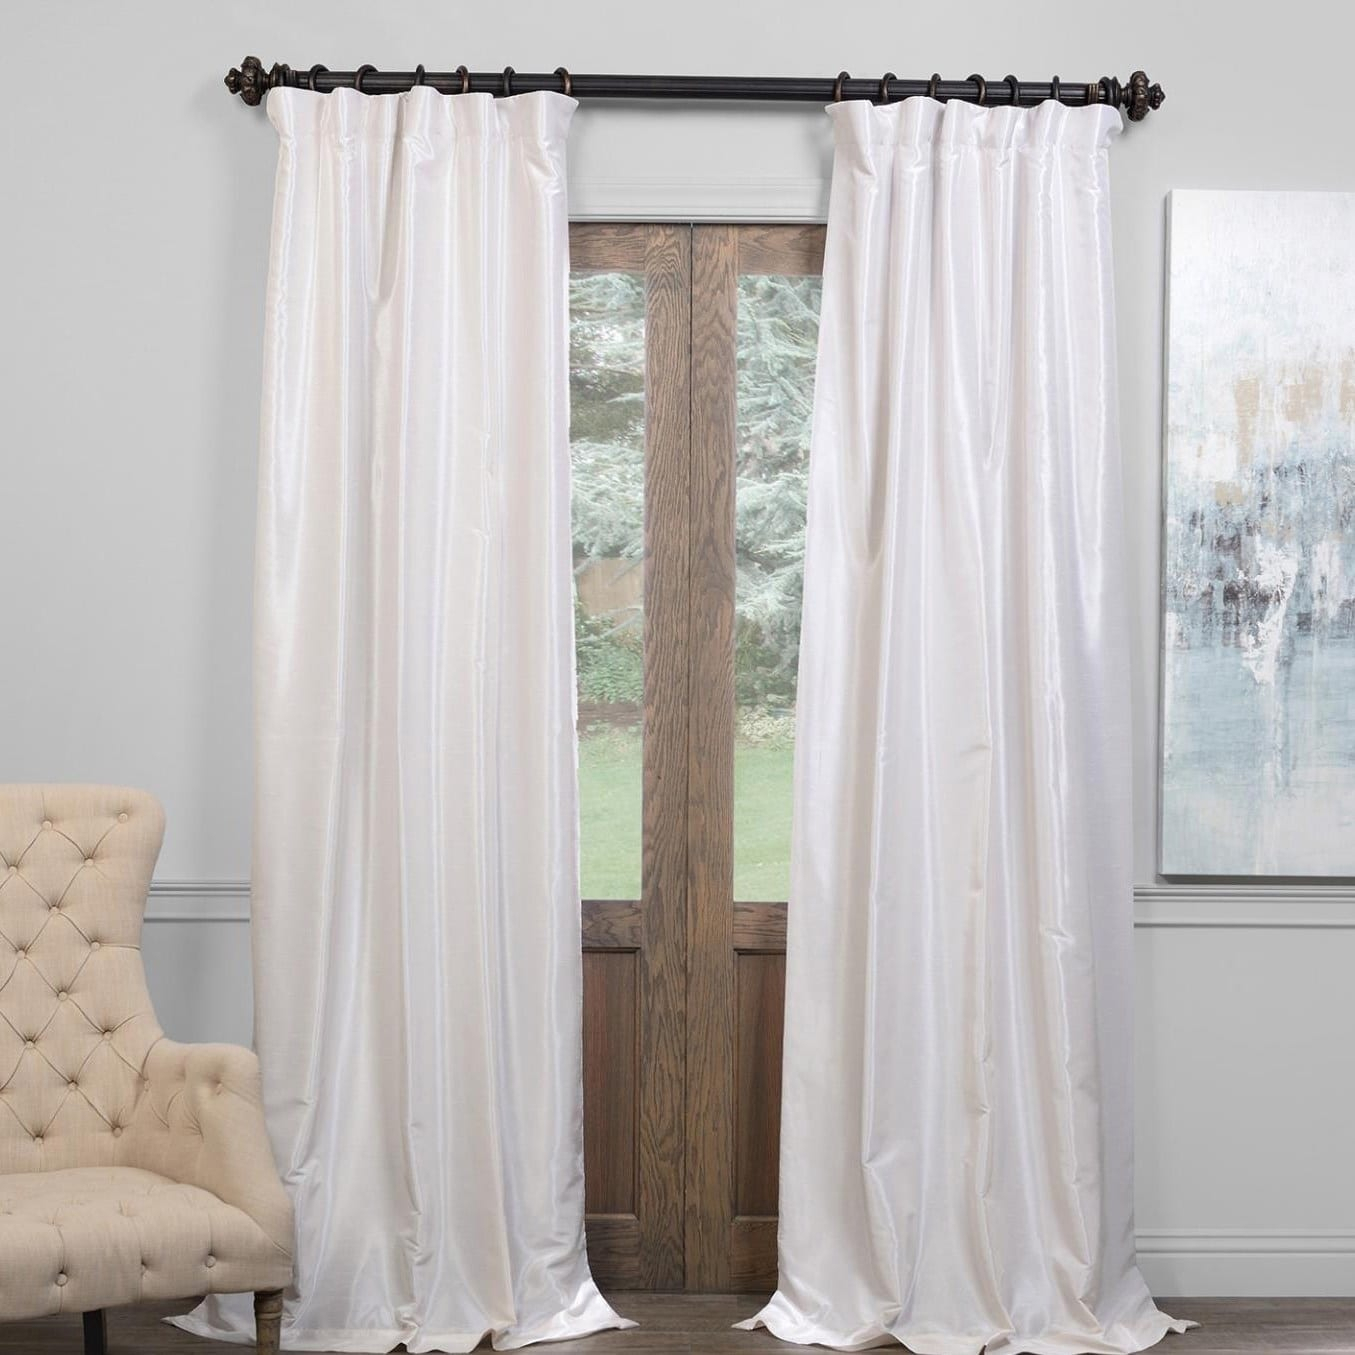 Exclusive Fabrics True Blackout Vintage Textured Faux Throughout Off White Vintage Faux Textured Silk Curtains (View 8 of 20)